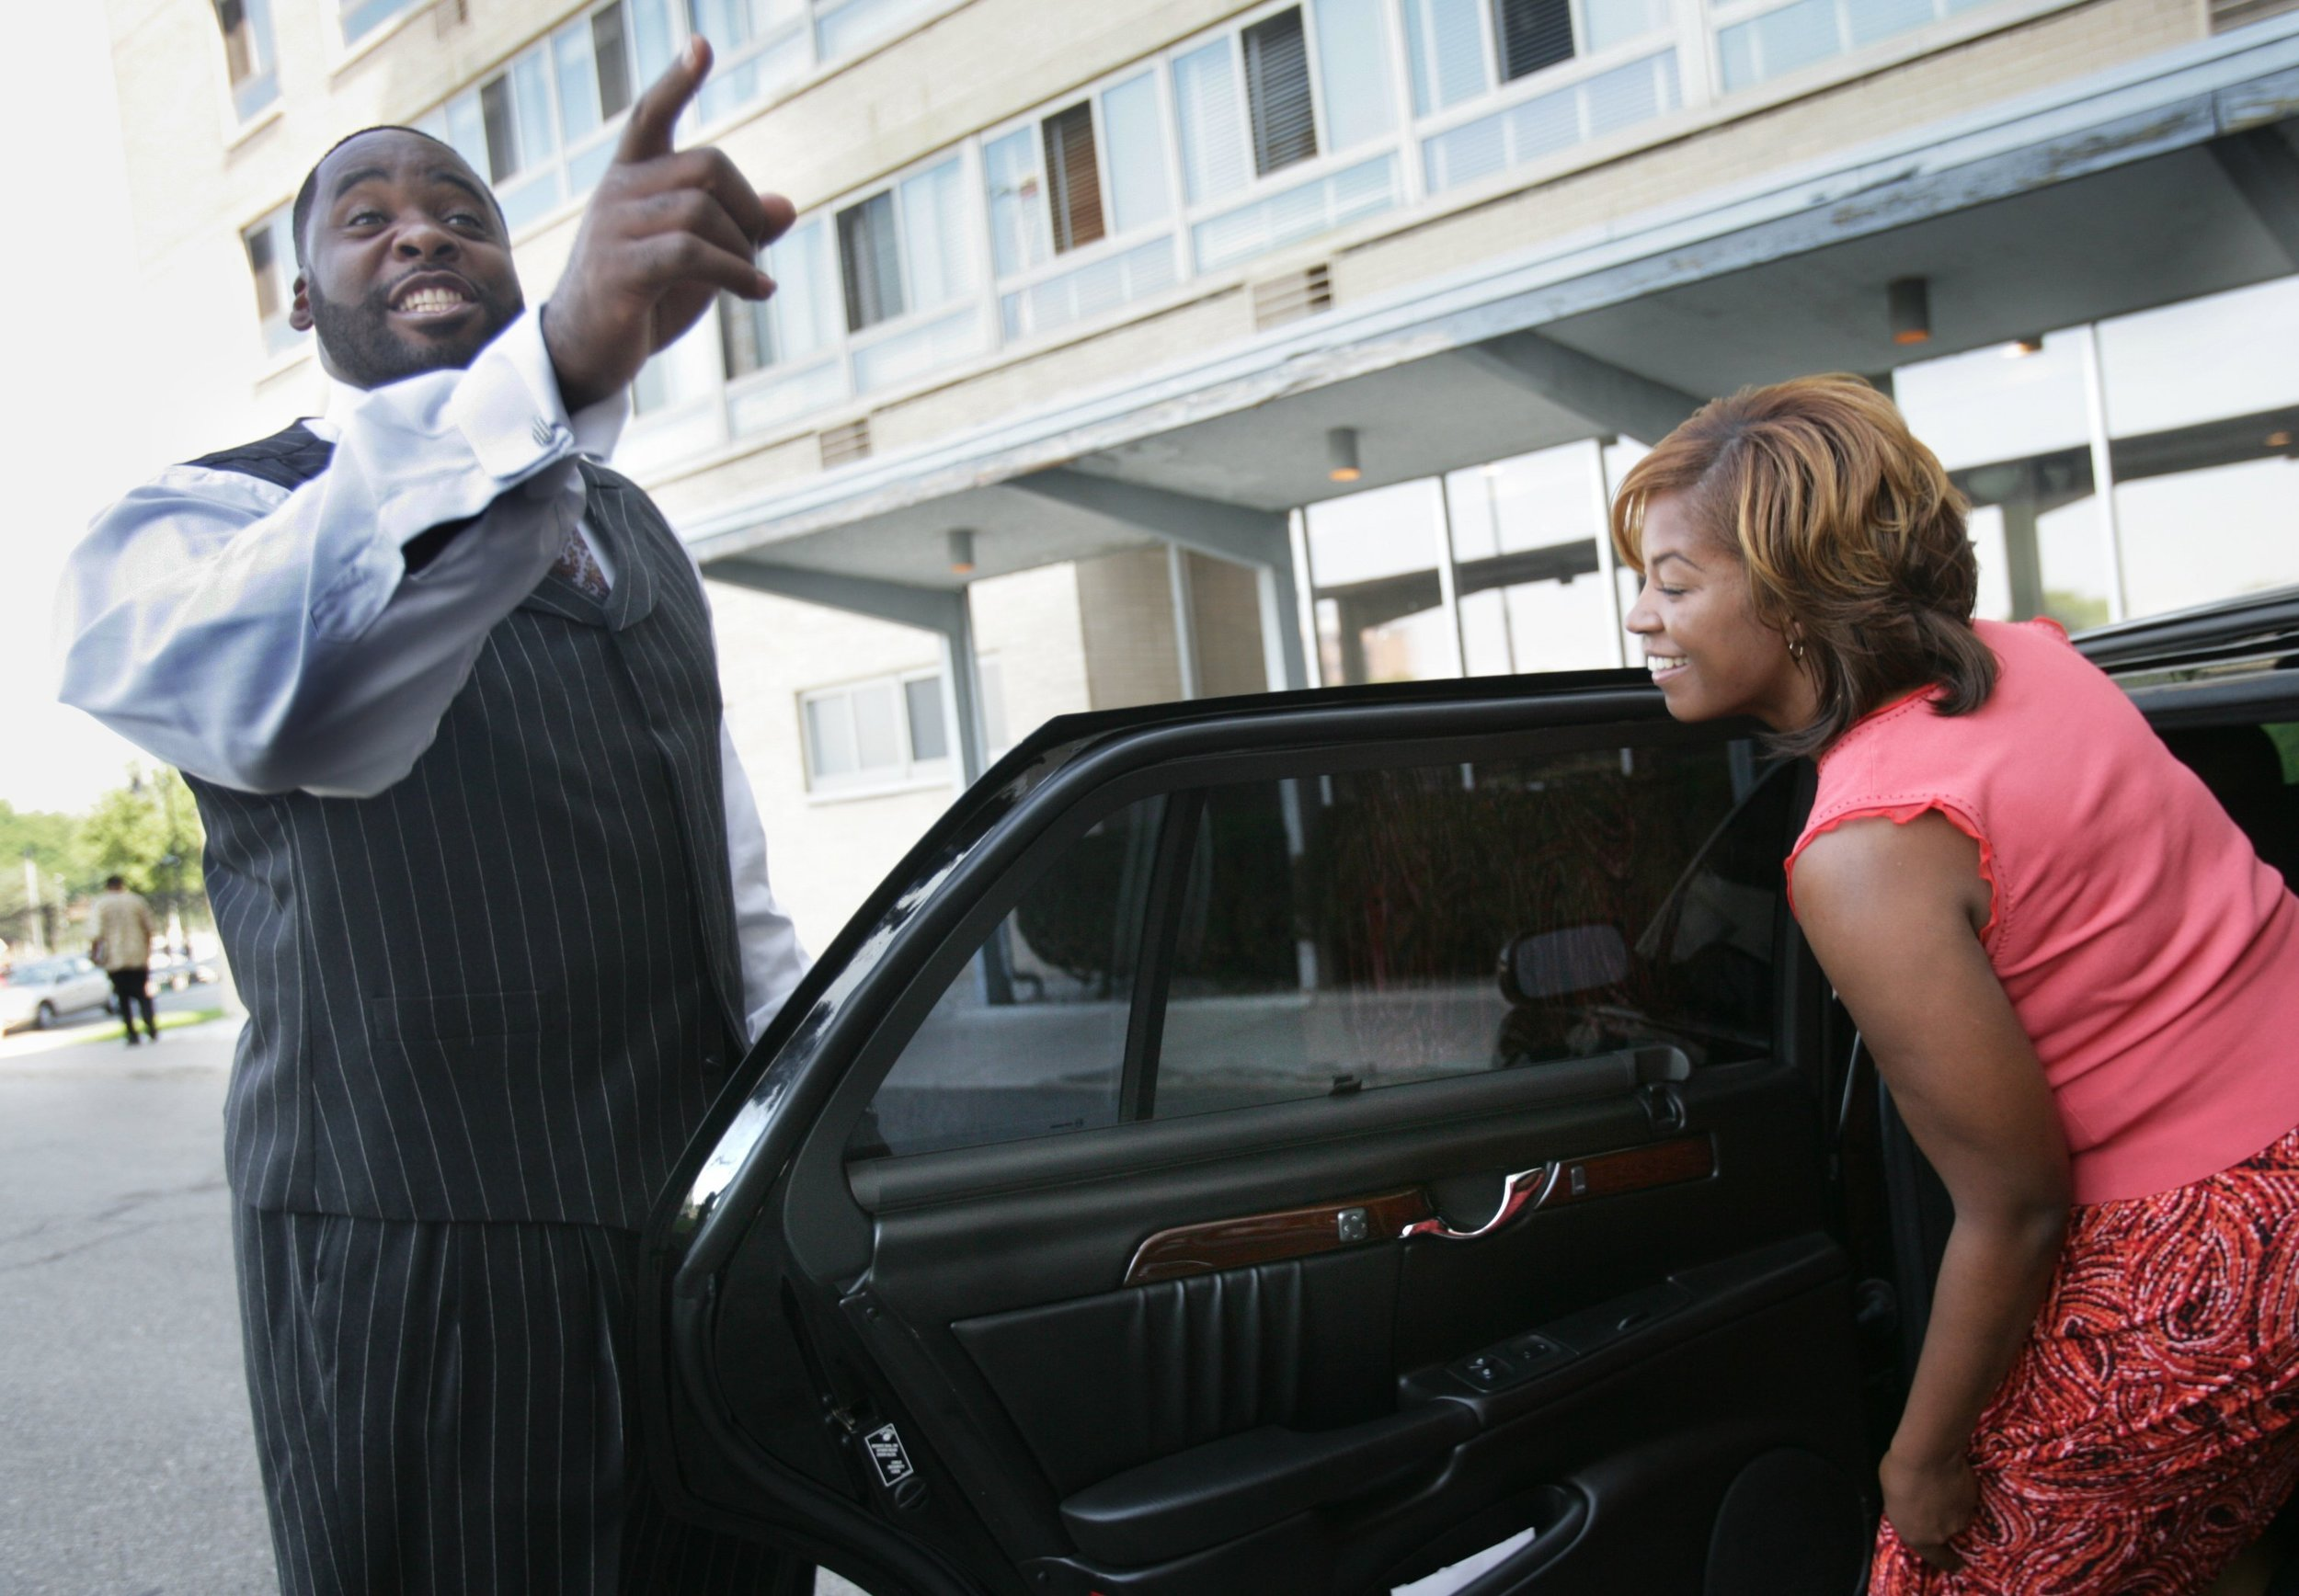 Kwame Kilpatrick jokes with the media after he and his wife Carlita voted in the 2005 Detroit mayoral primary. Detroit has an open primary system, so the top two vote-getters would run against each other in the November election.  Courtesy of the Detroit Free Press.